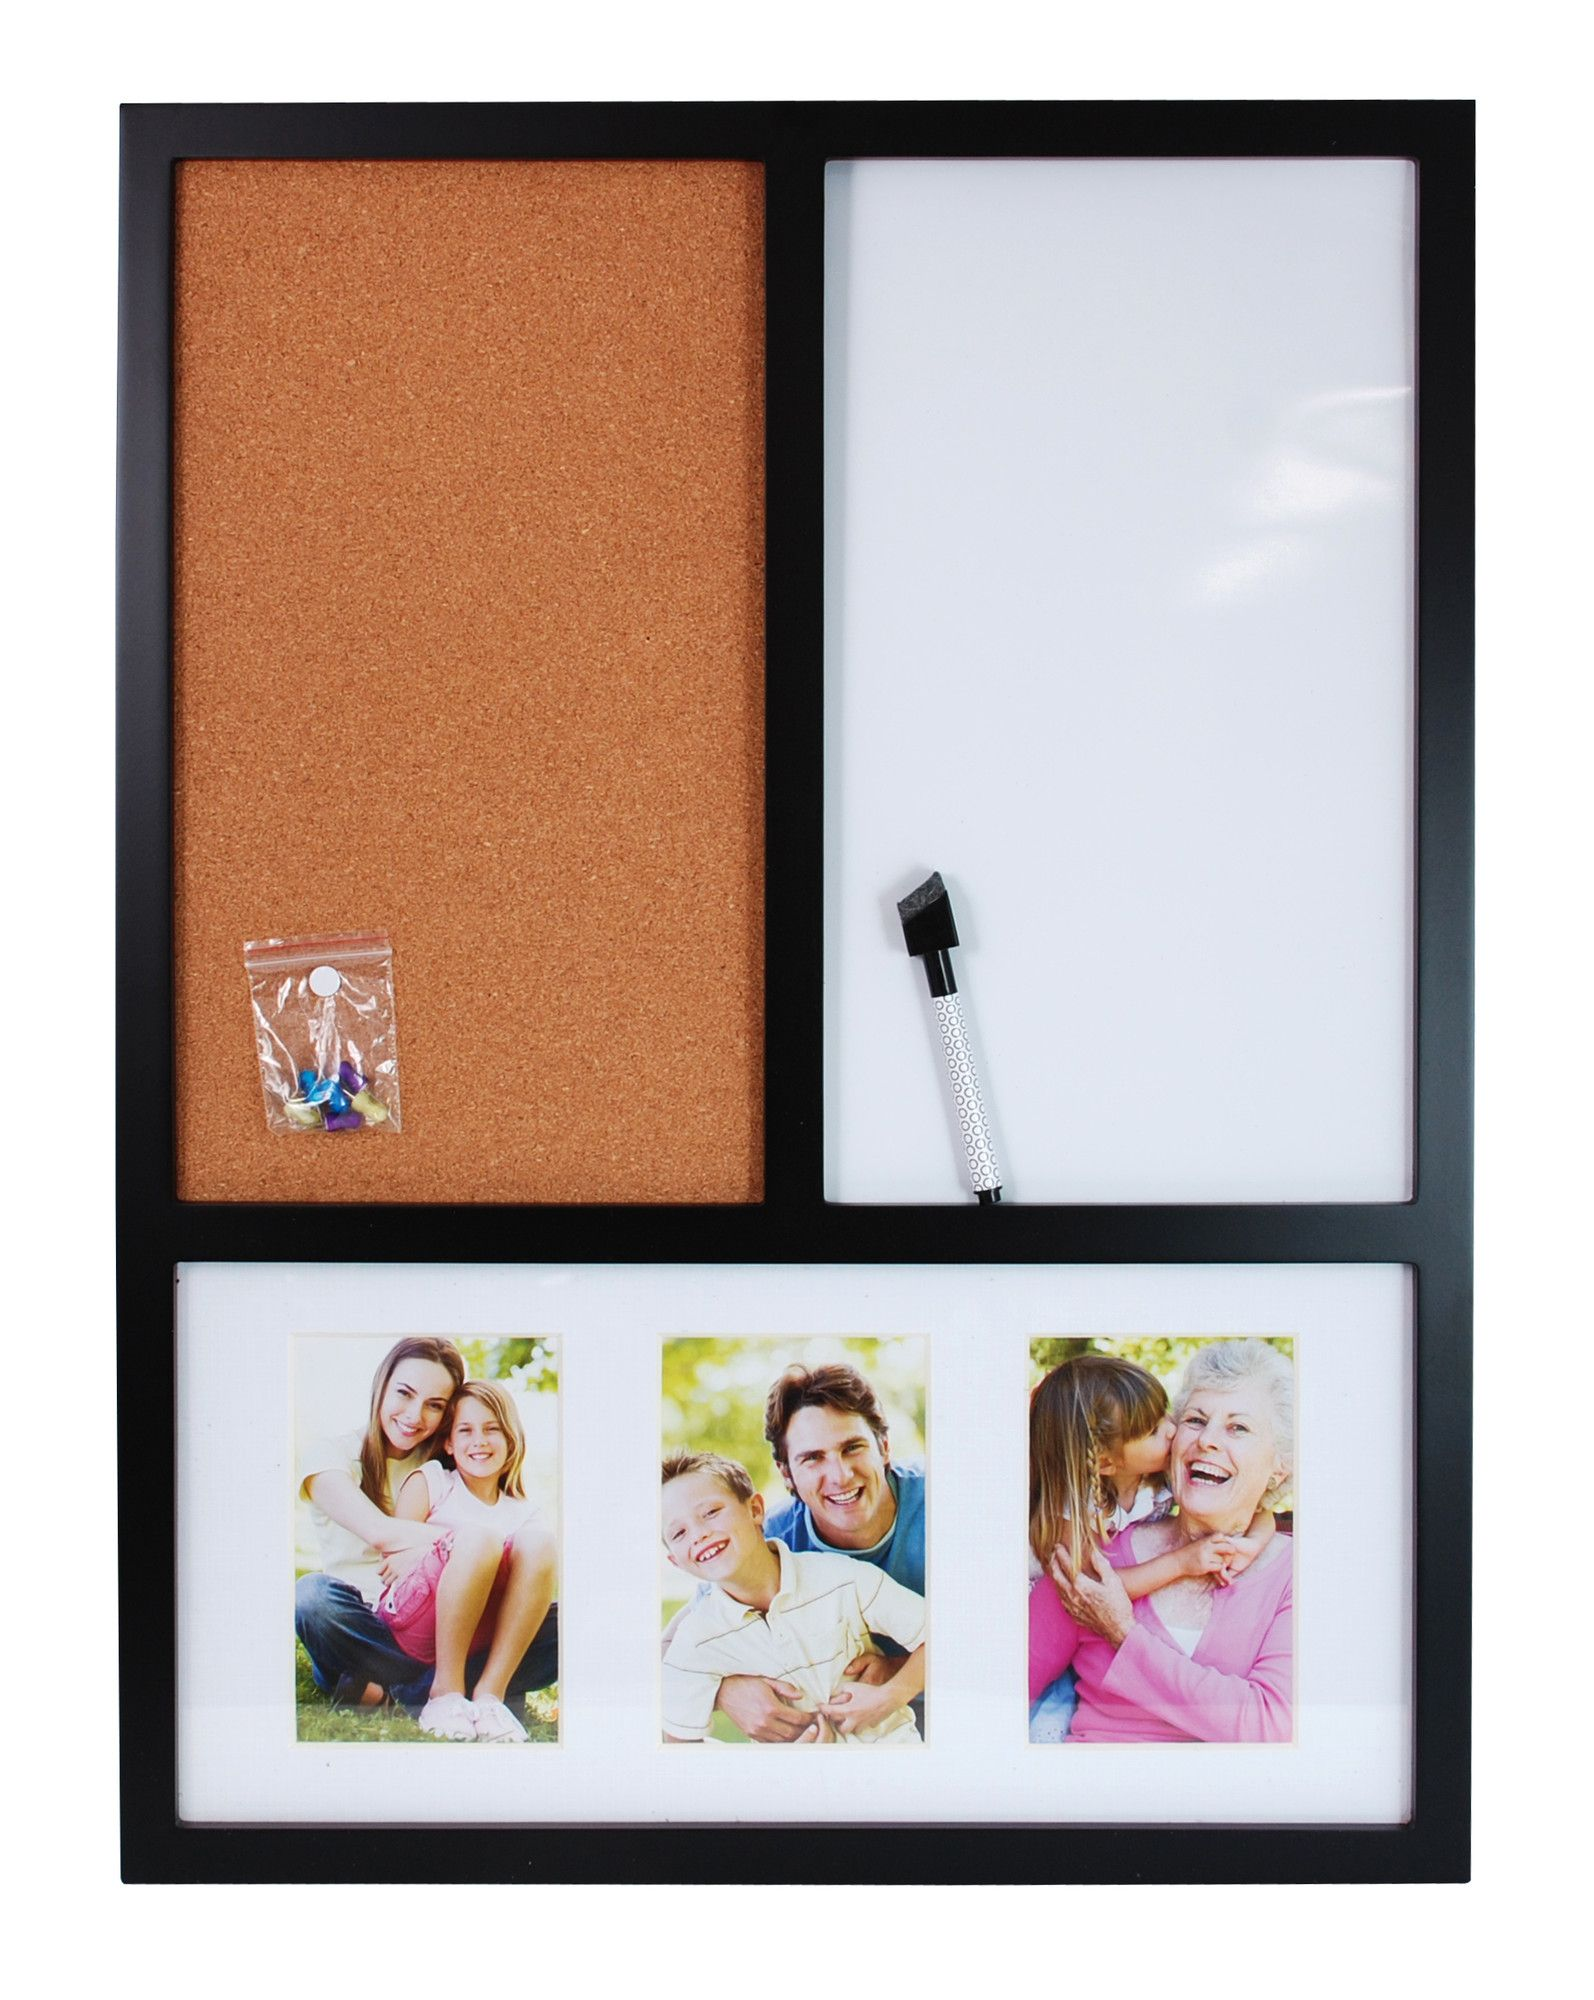 Memo Board with Dry Erase and Cork Wall Mounted Combination Boards, 2' H x 2' W